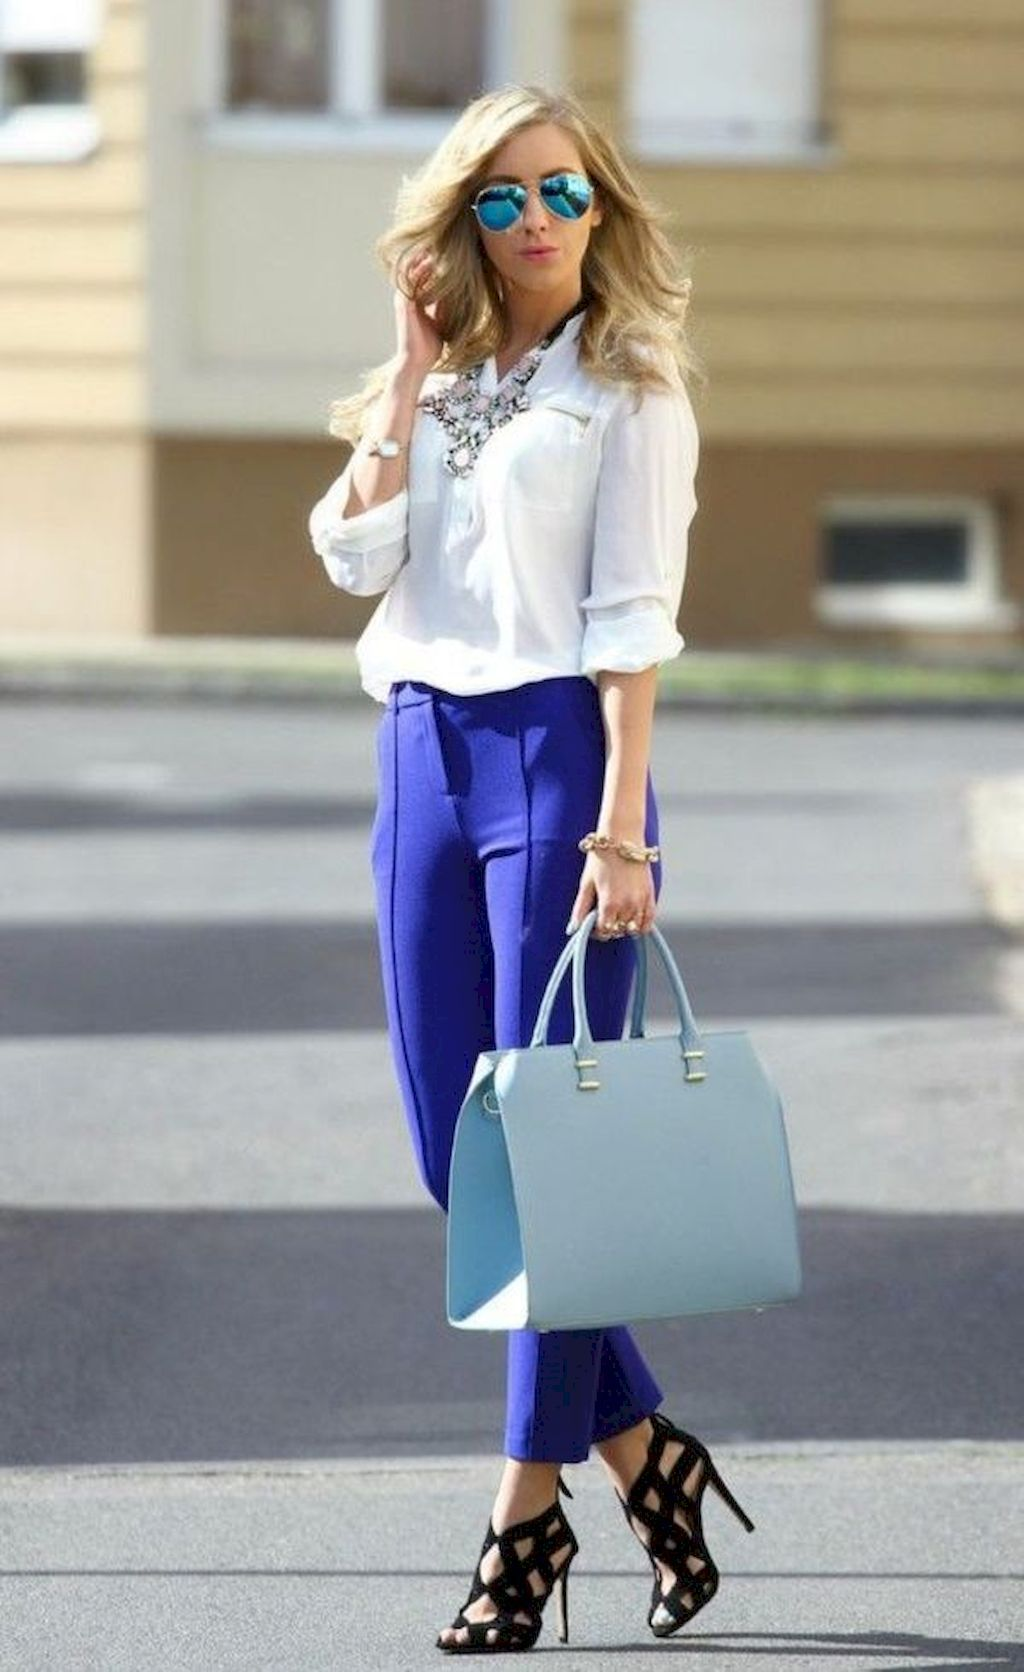 Women's Work Wear Outfits-20 Best Summer Office Wear for Women forecast